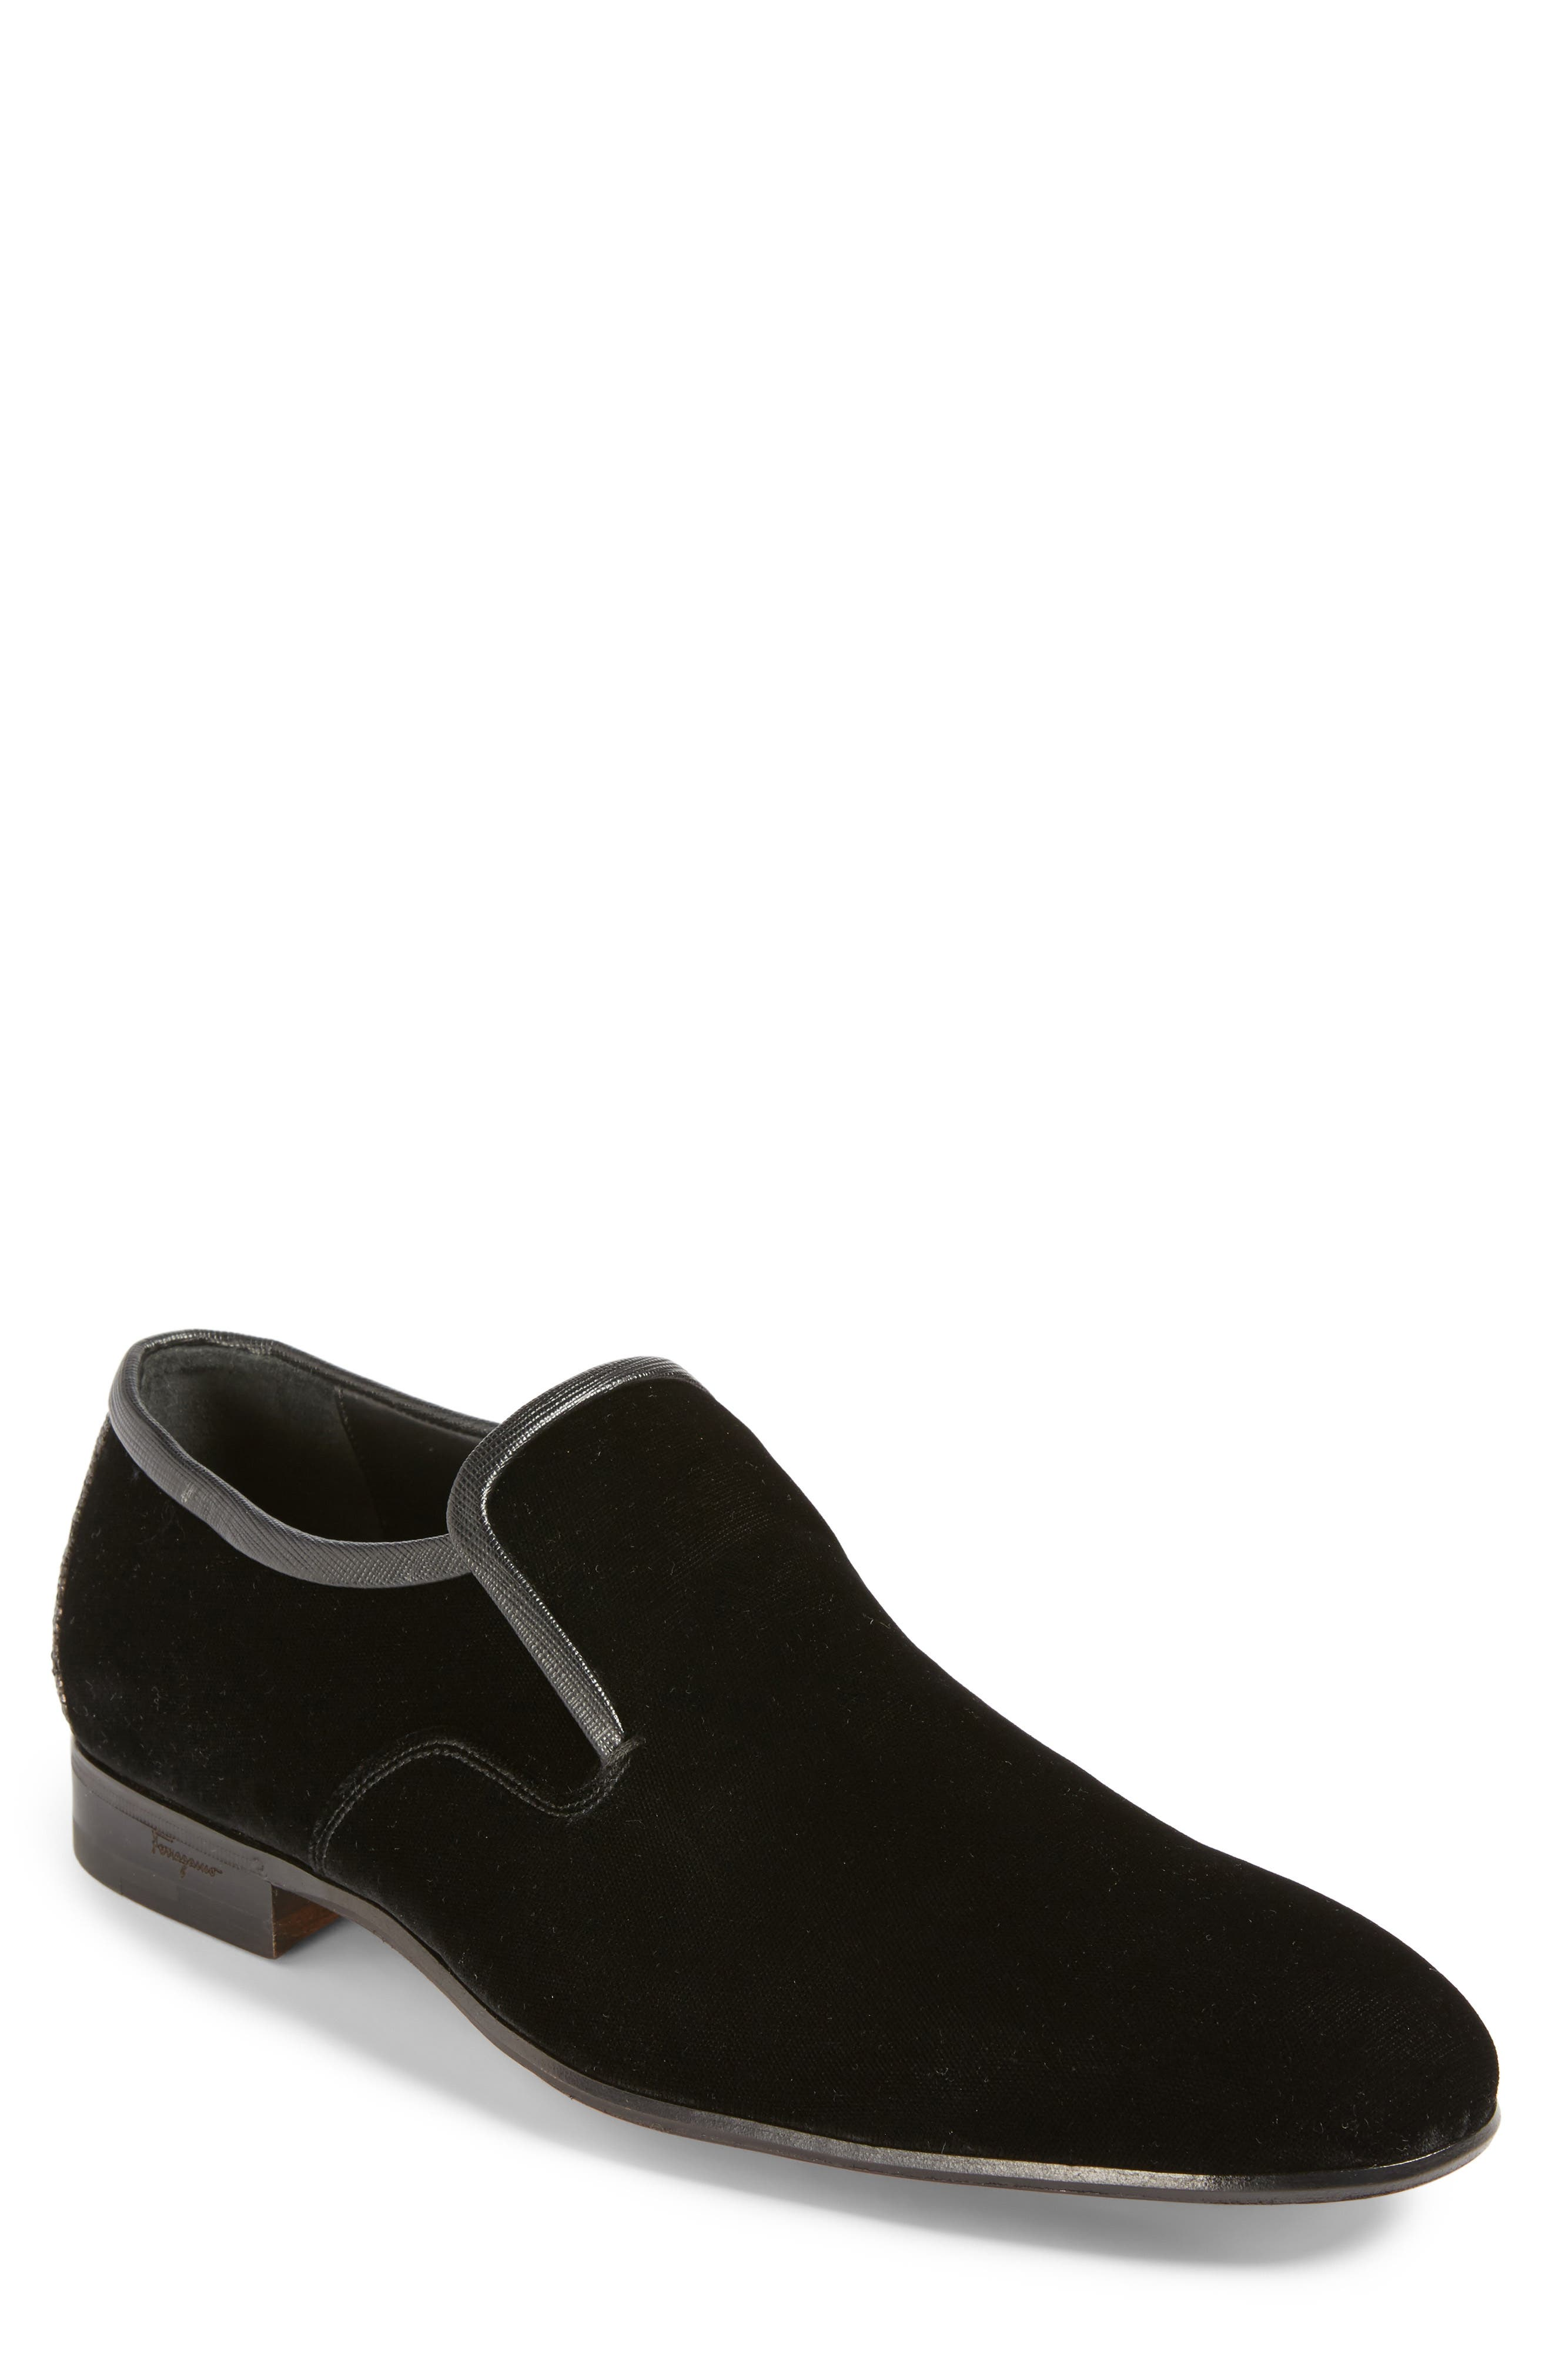 Venetian Loafer,                         Main,                         color, 001